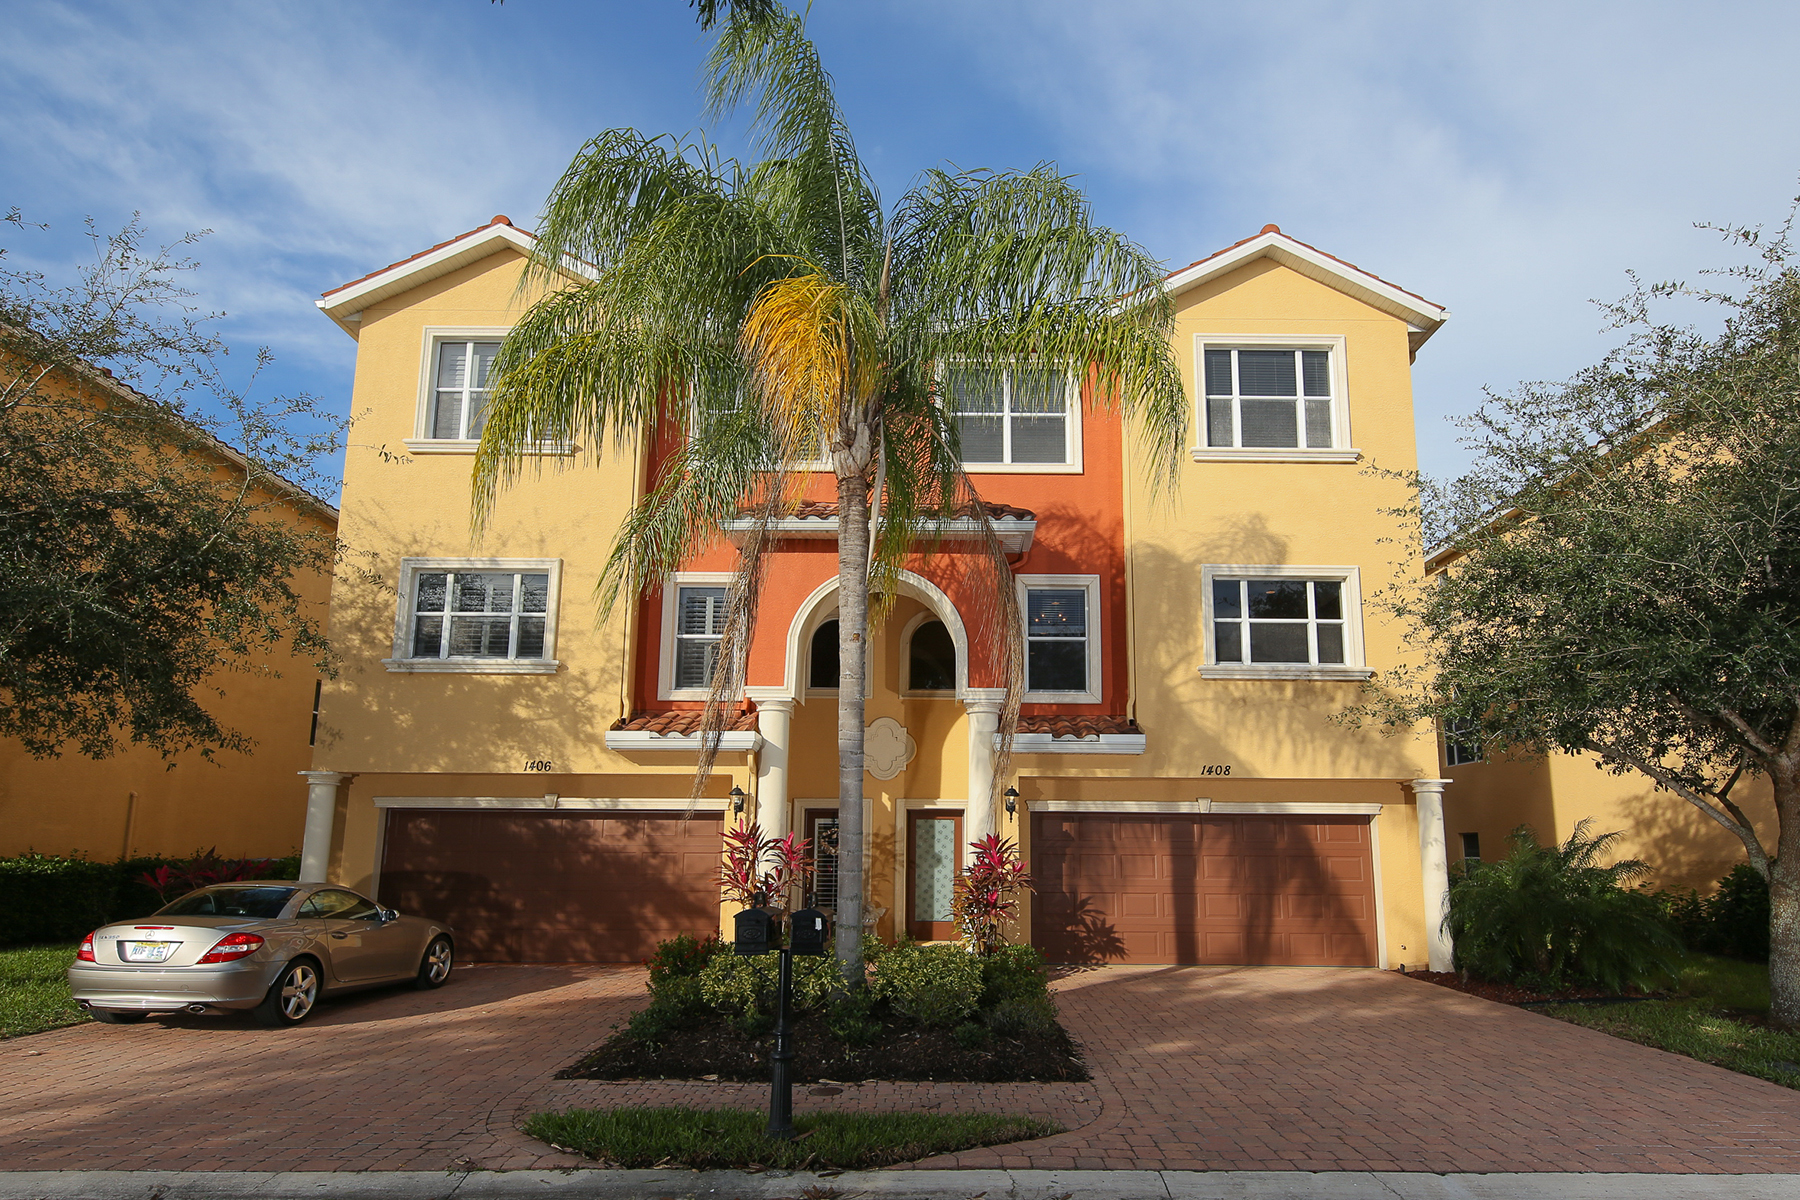 Townhouse for Sale at HAMMOCKS AT RIVIERA DUNES 1408 3rd Street Cir E Palmetto, Florida 34221 United States